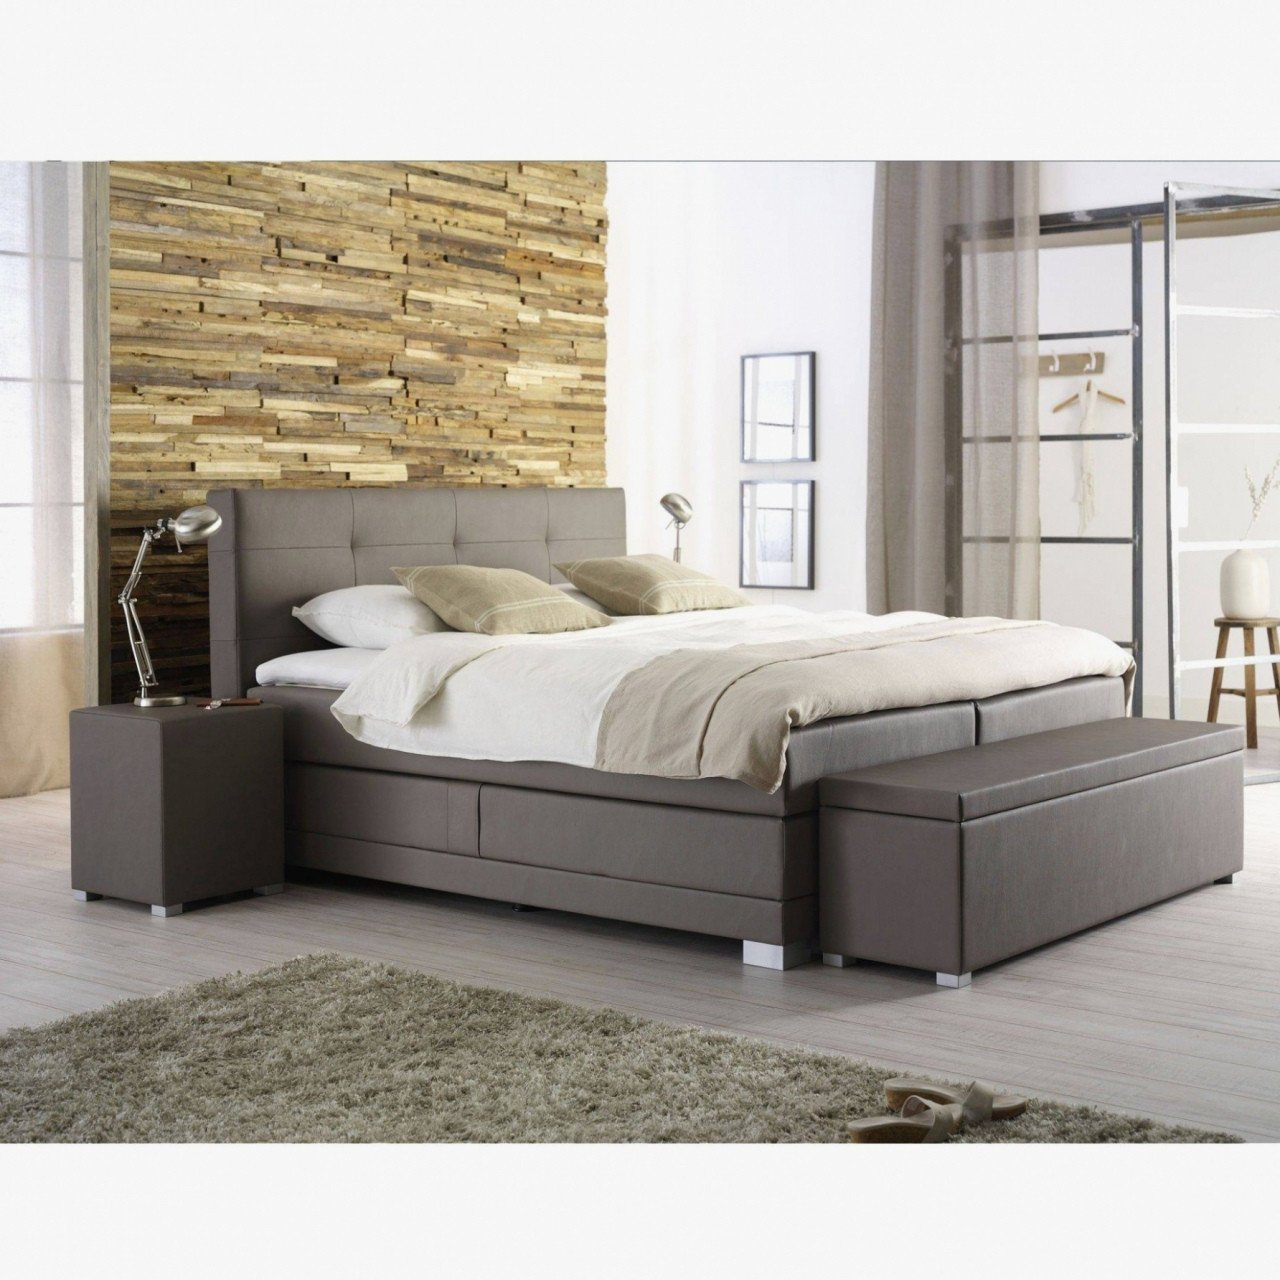 Rustic White Bedroom Set Best Of Bed Platform with Drawers — Procura Home Blog